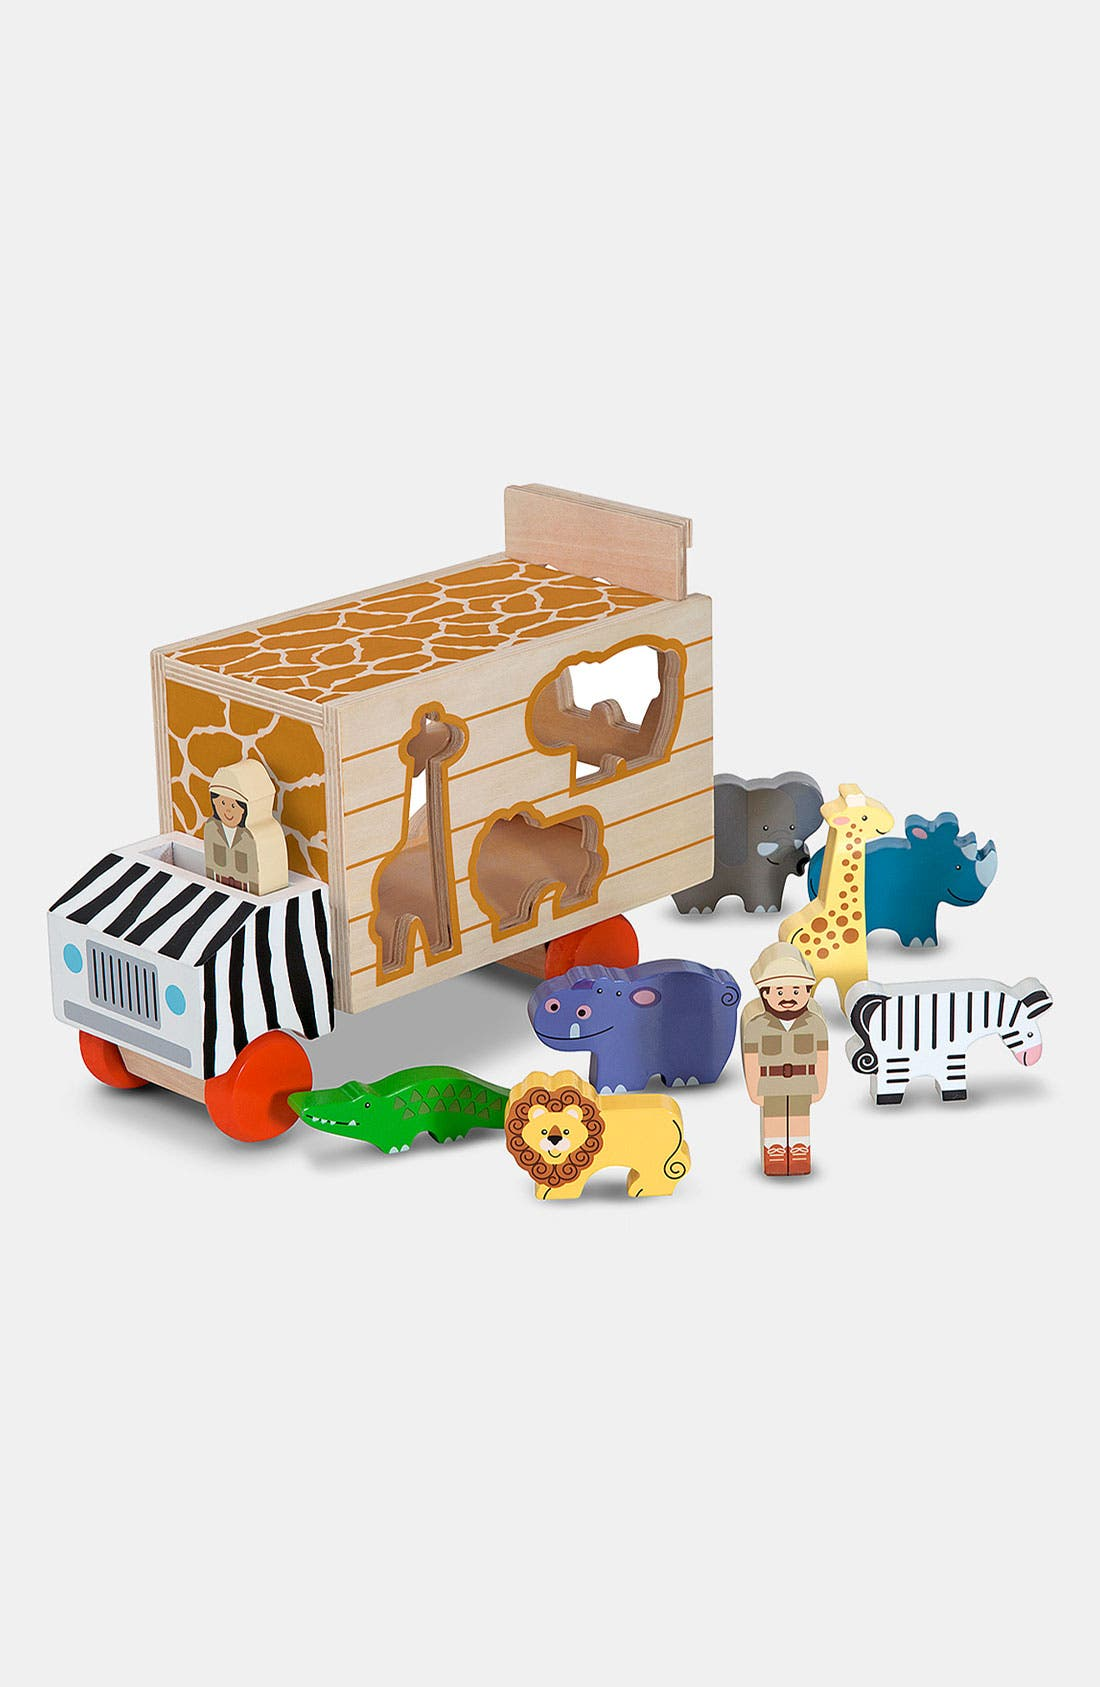 'Animal Rescue' Shape Sorting Wooden Truck Toy,                             Alternate thumbnail 2, color,                             BROWN